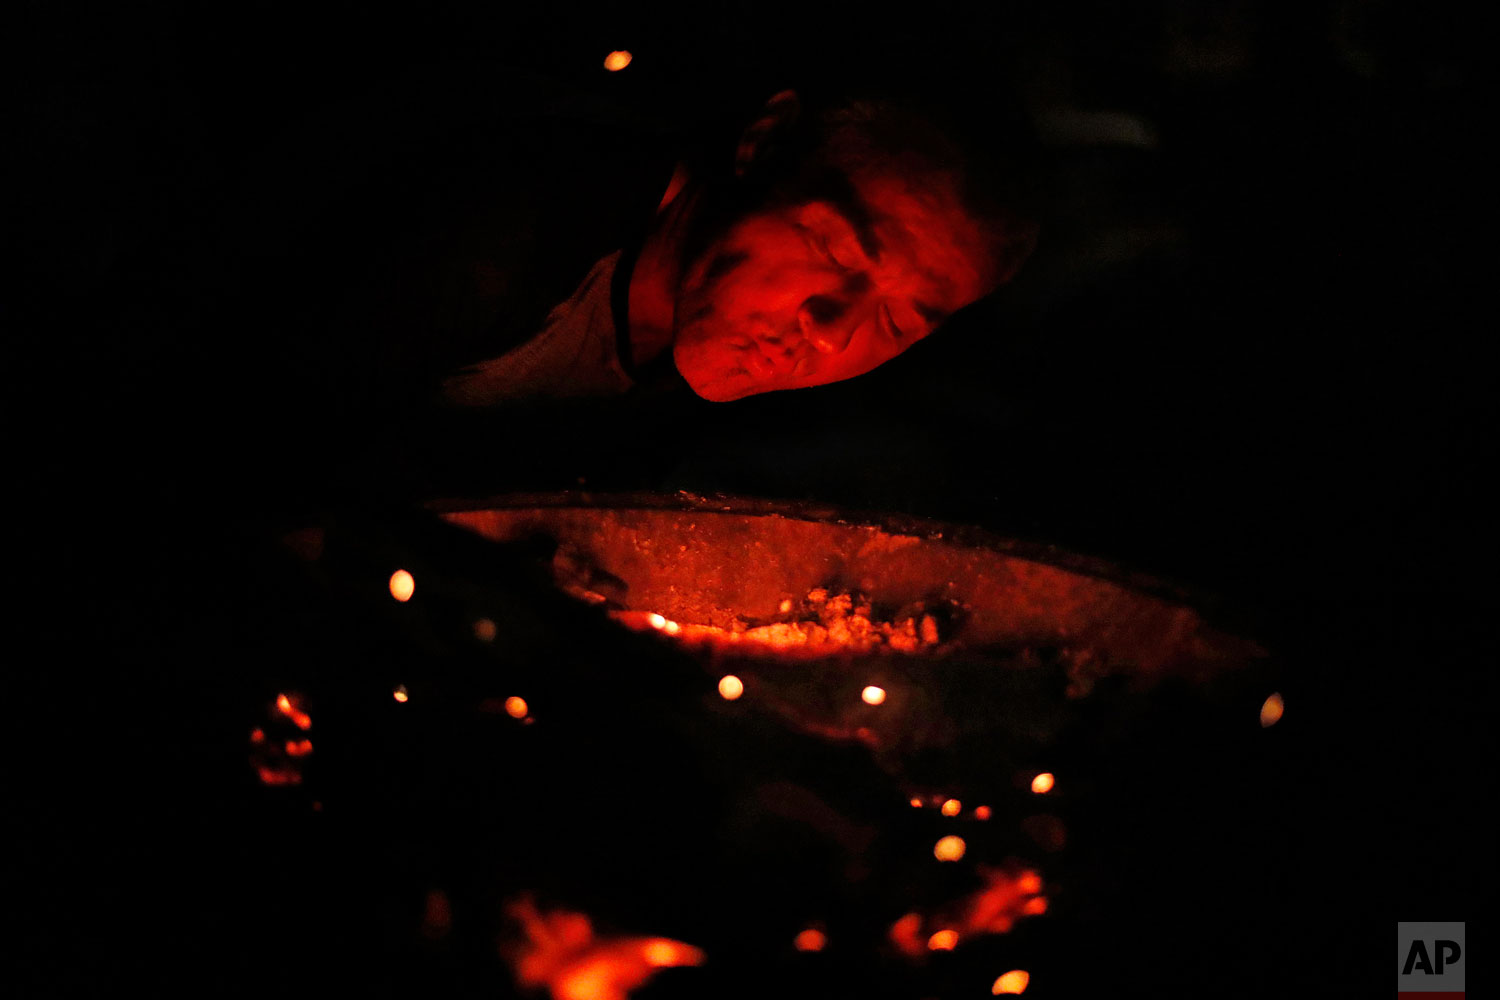 Gene Hogan blows on a campfire outside the tent he's living in since becoming homeless from Hurricane Michael in Youngstown, Fla, Wednesday, Jan. 23, 2019. Hotel vouchers and trailers provided by the Federal Emergency Management Agency are helping ease the pain, but for many residents living in tents is their only option. (AP Photo/David Goldman)